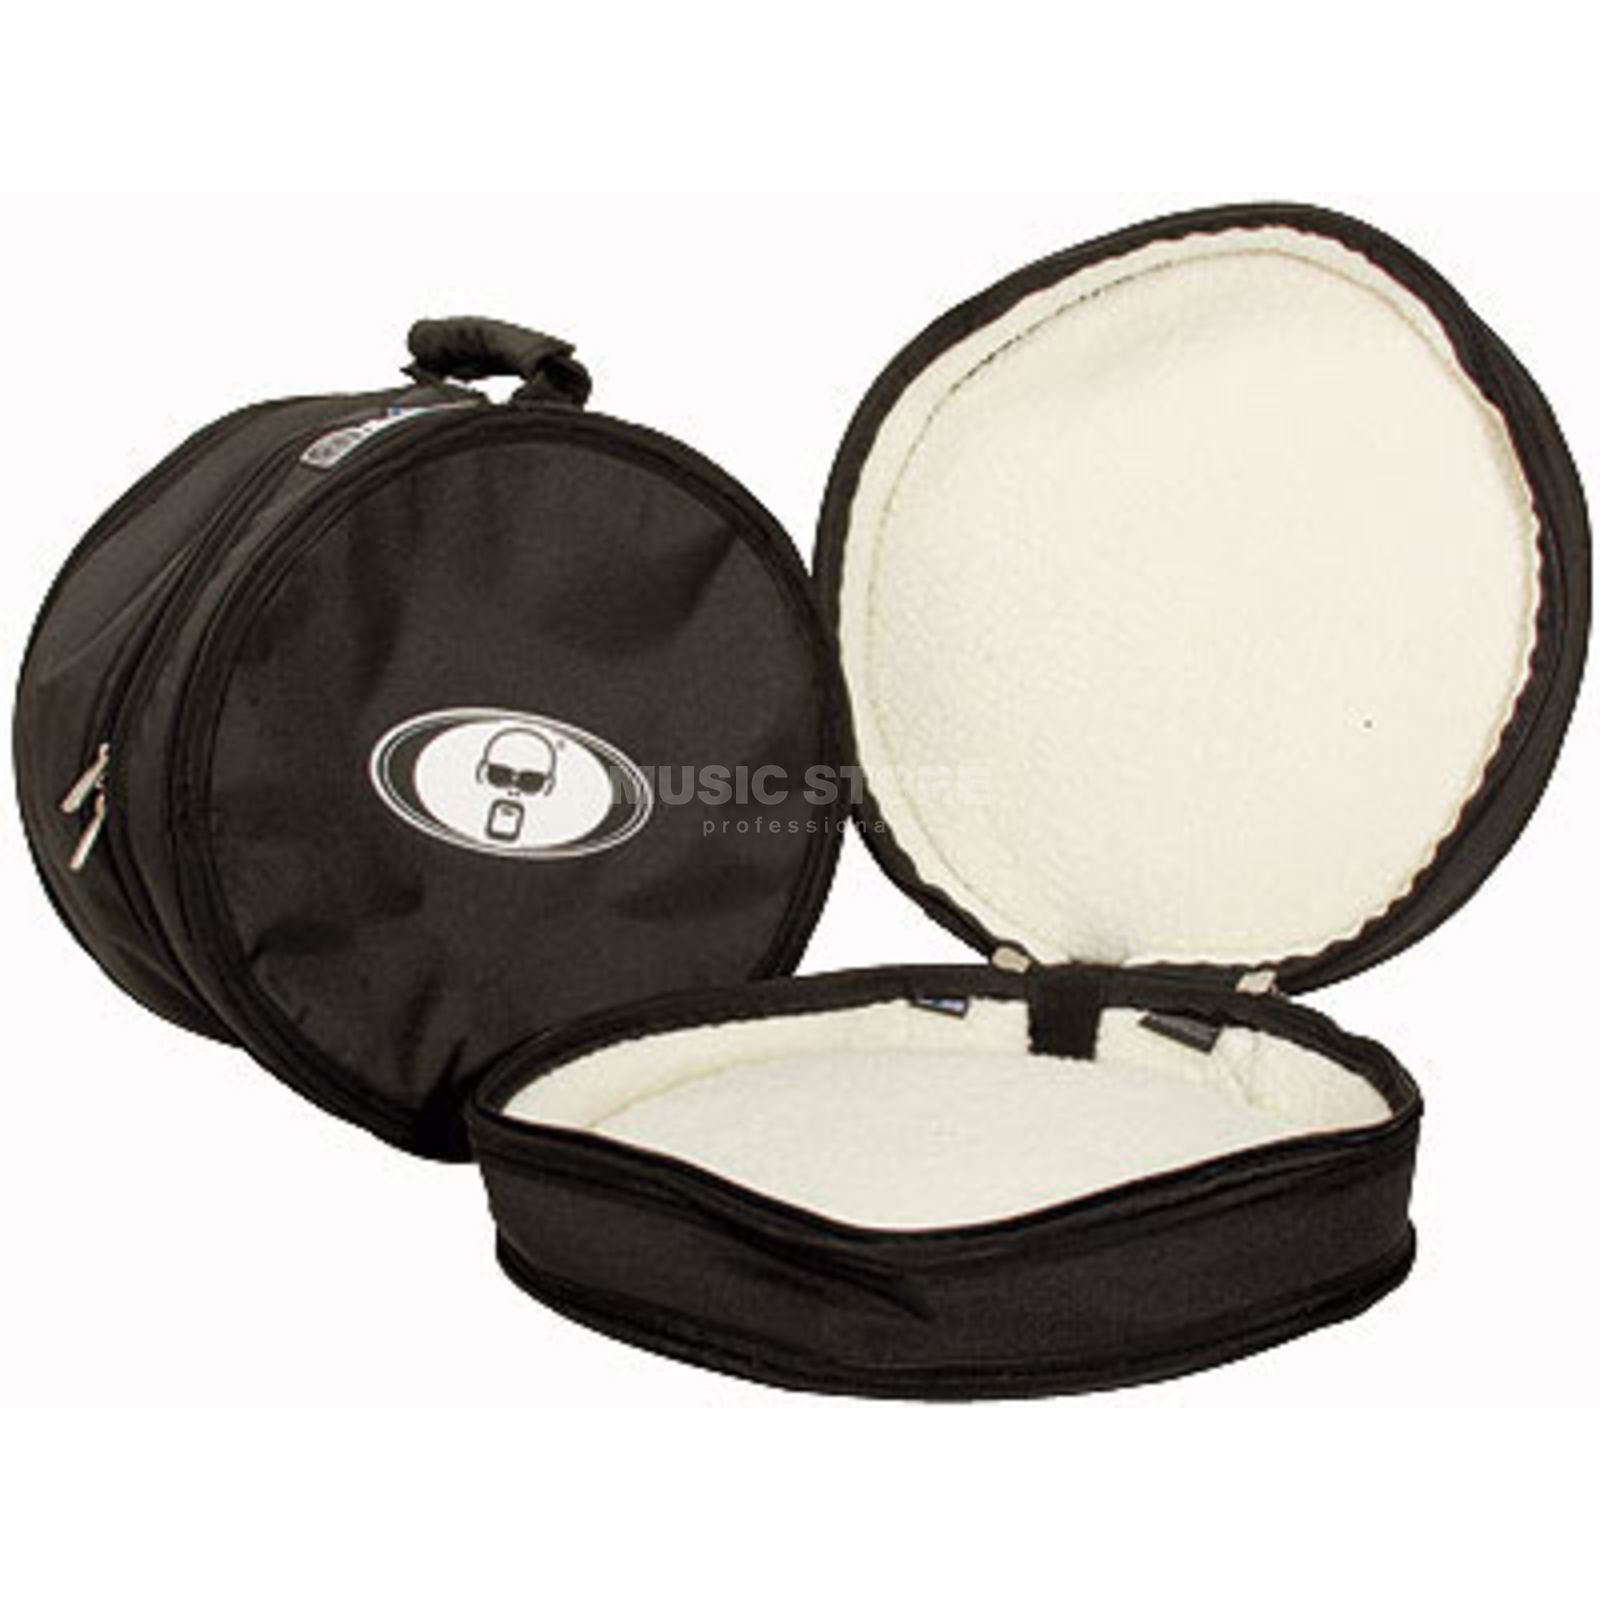 "Protection Racket Tom Bag 5127R, 12""x7"", w/rims Zdjęcie produktu"